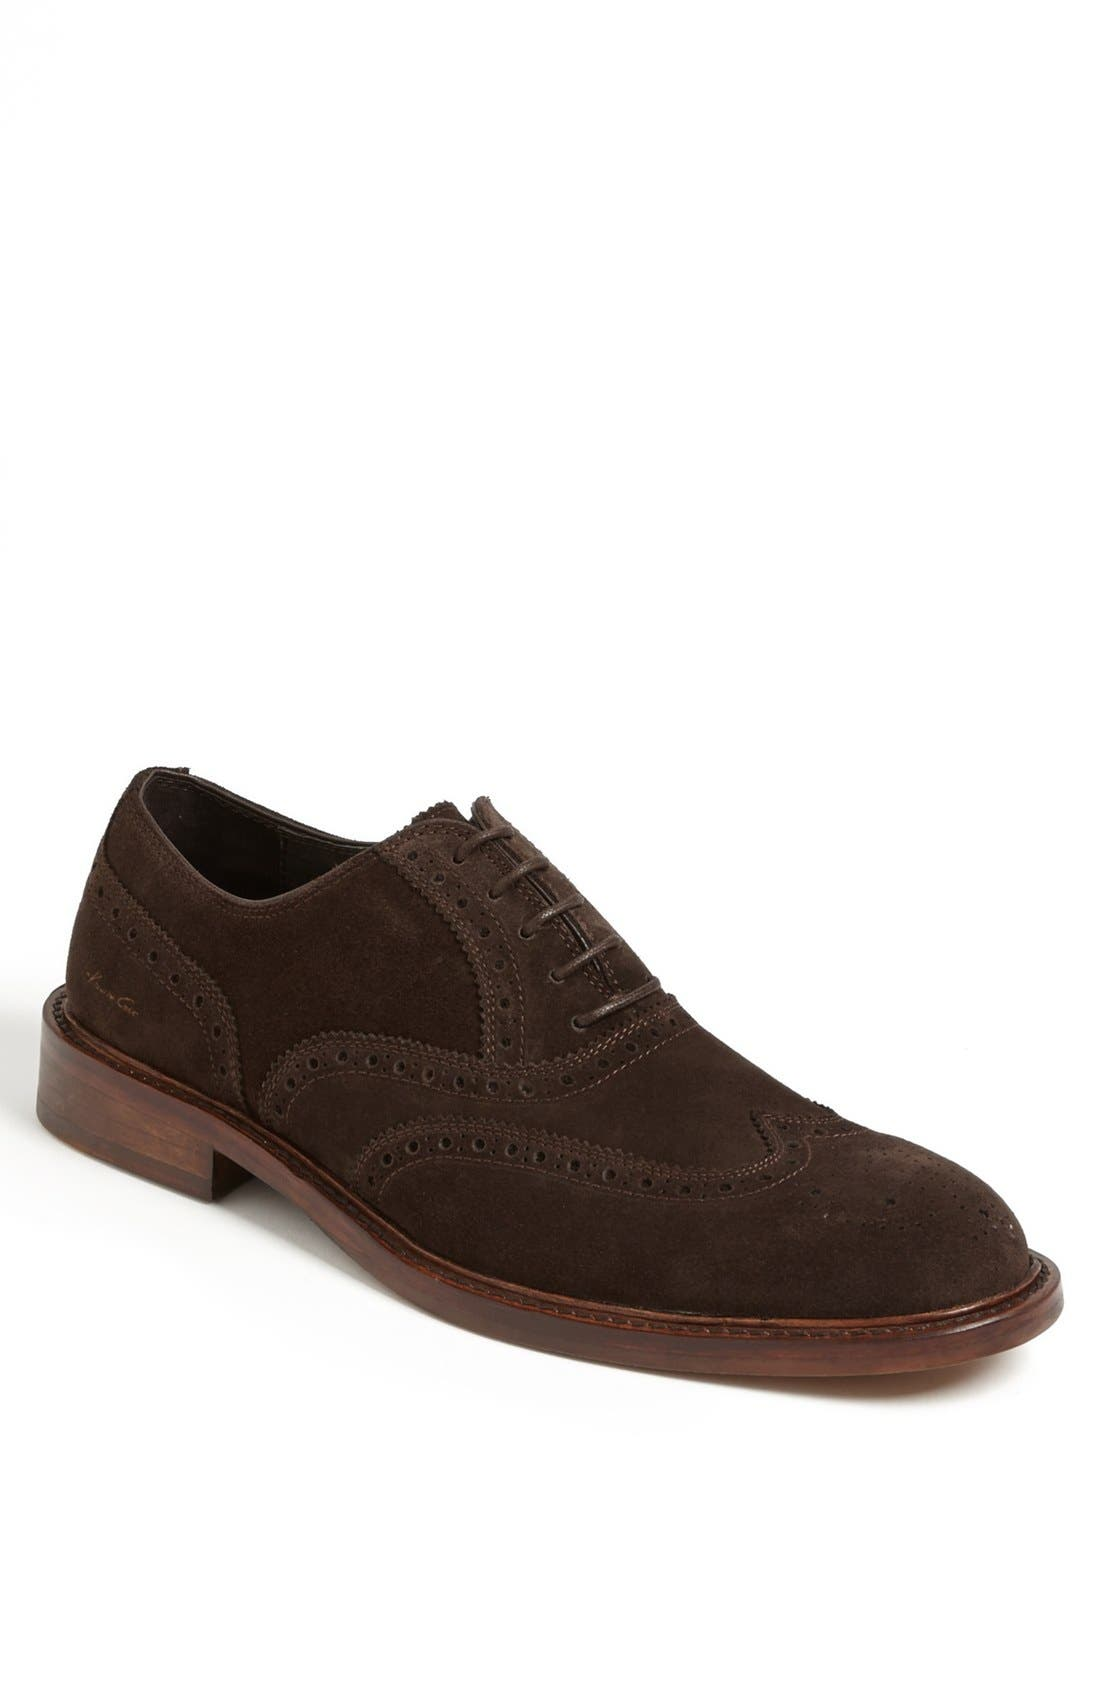 Alternate Image 1 Selected - Kenneth Cole New York 'Elite Class' Wingtip